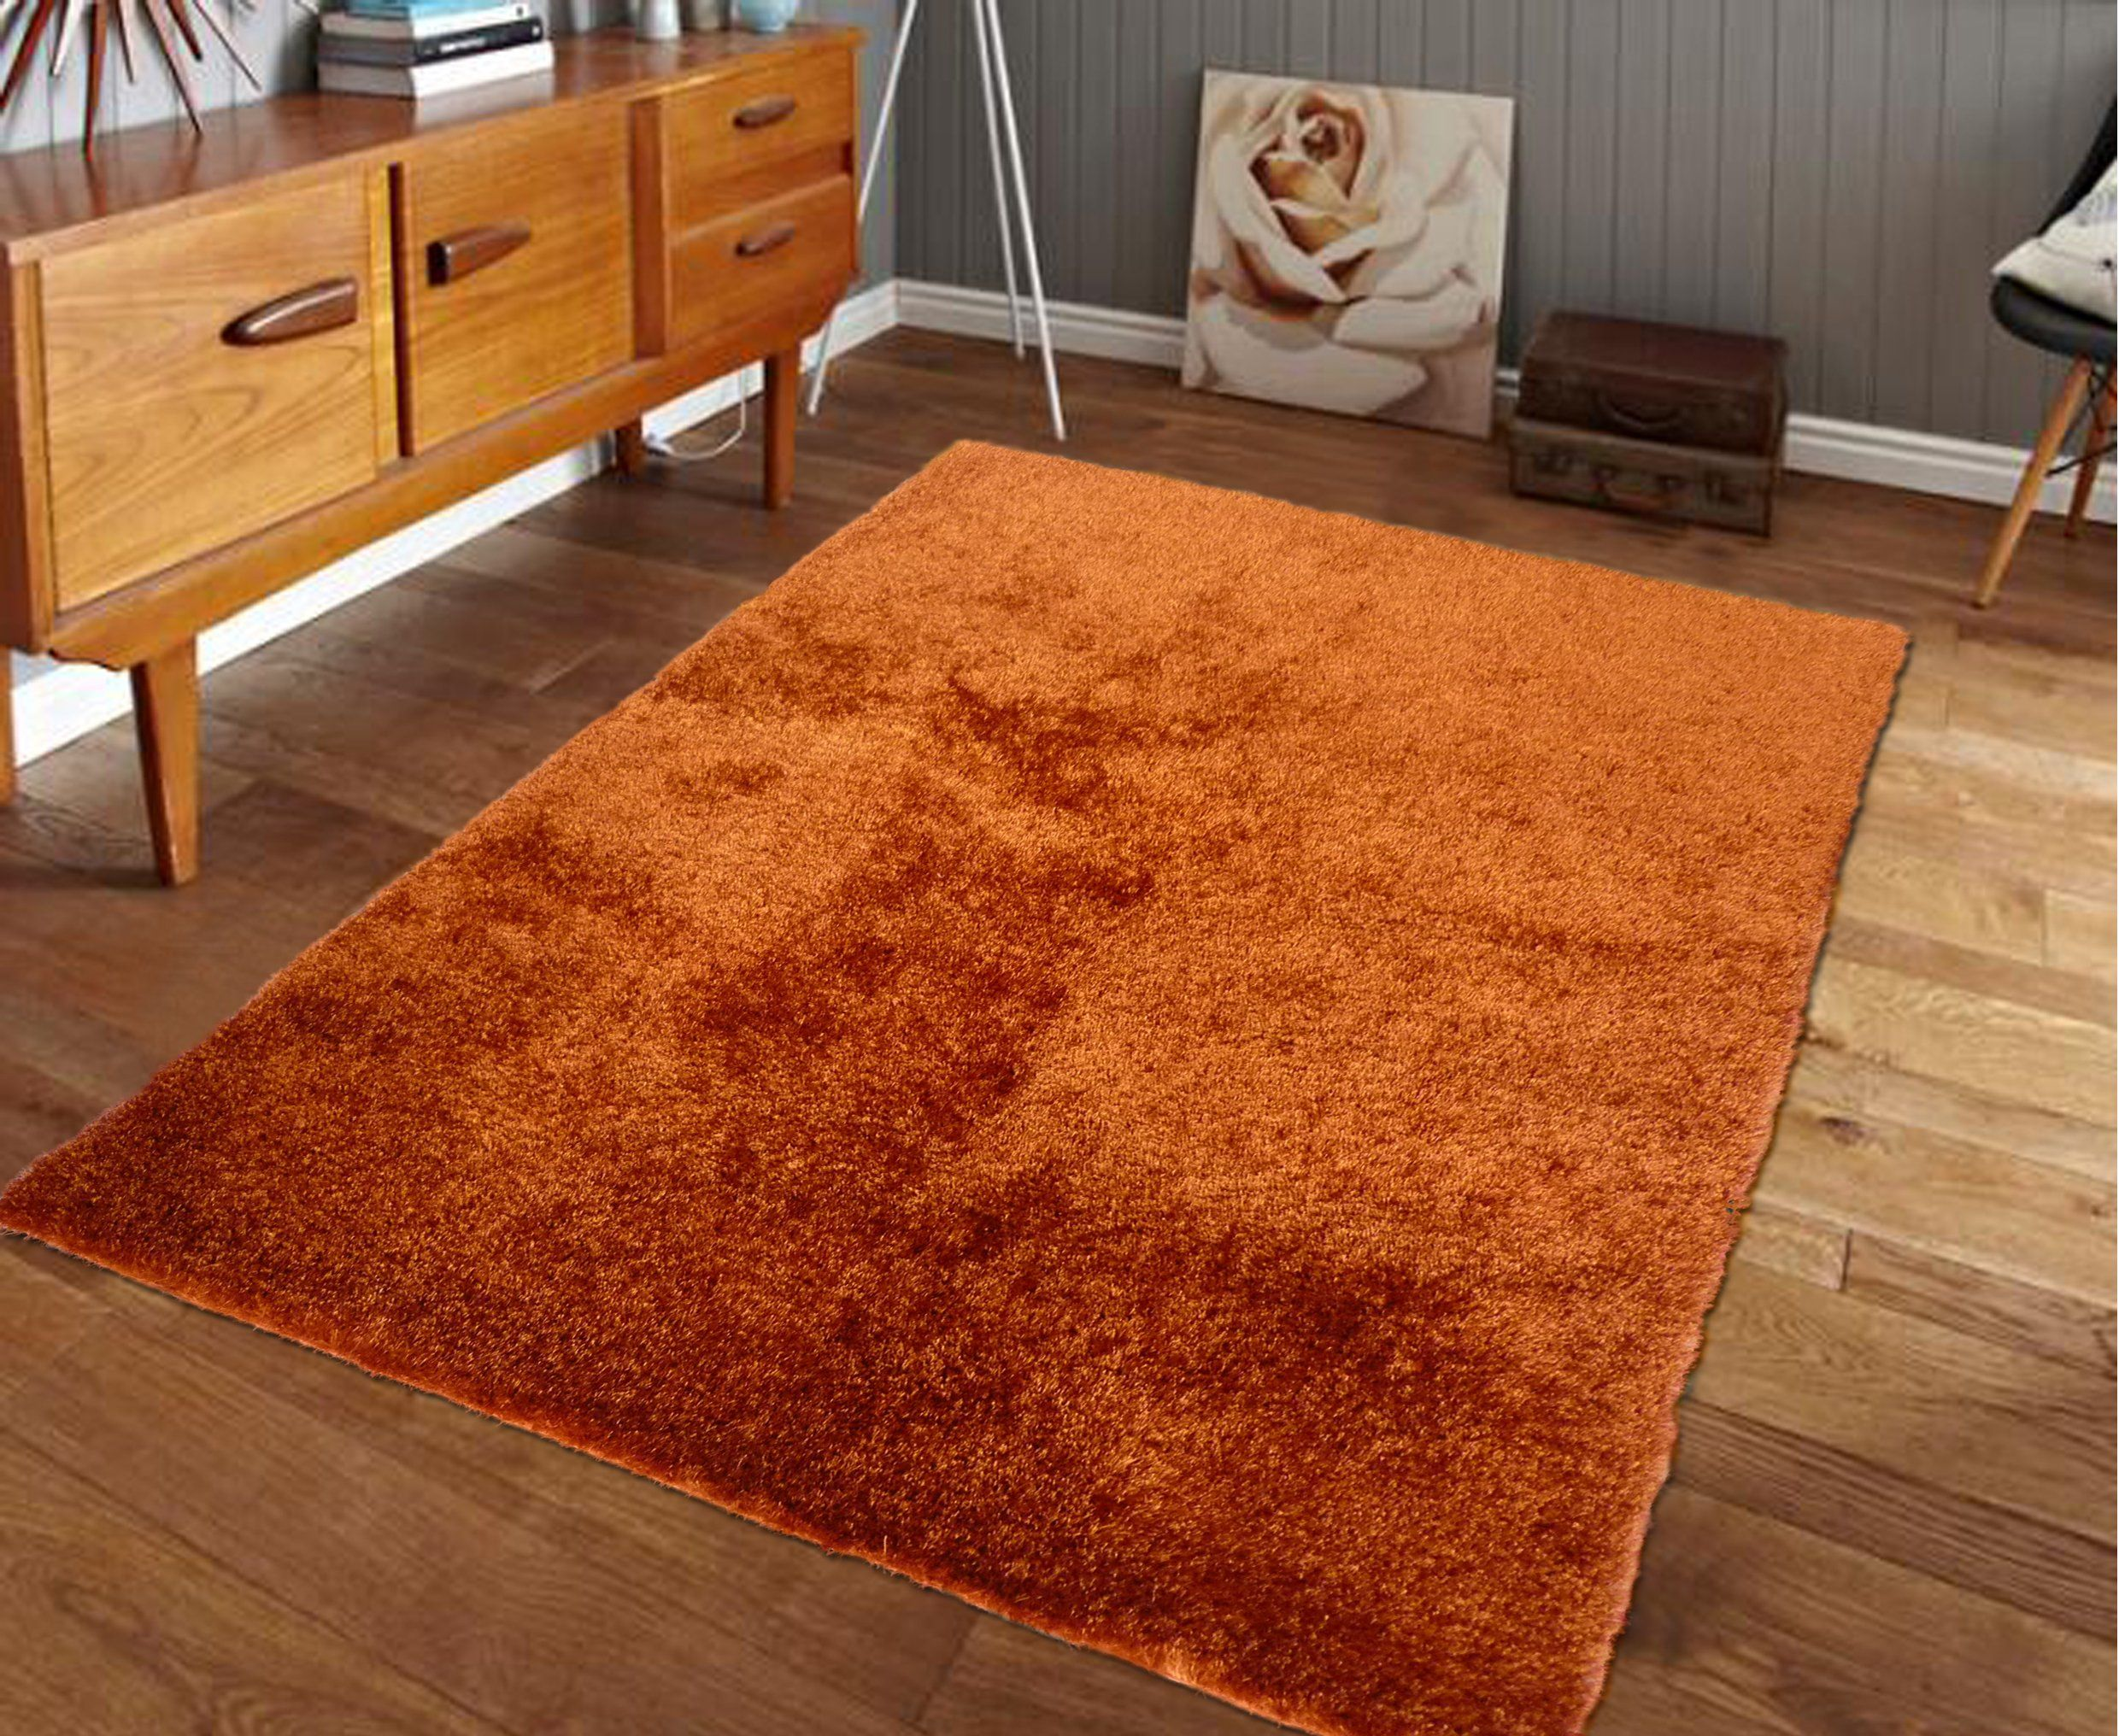 Amazon Com Rust Solid Color Soft Hand Tafted Shag Area Rug Amore Shag Are 100 Polyester With Exact Size 5 Feet By 7 Shag Area Rug Rugs On Carpet Area Rugs